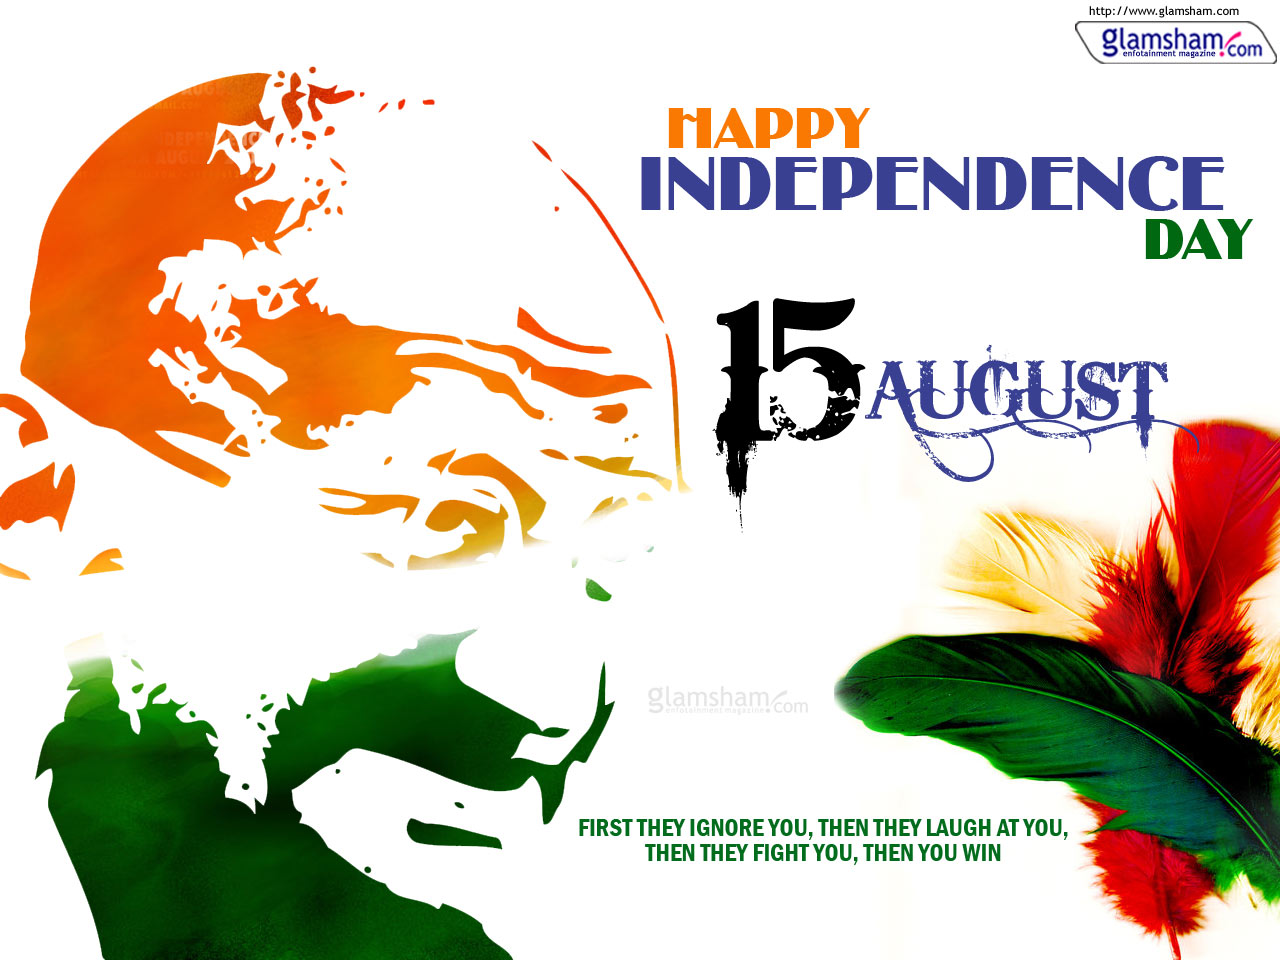 Happy Independence Day Greetings, wallpapers, Images and Facebook Covers